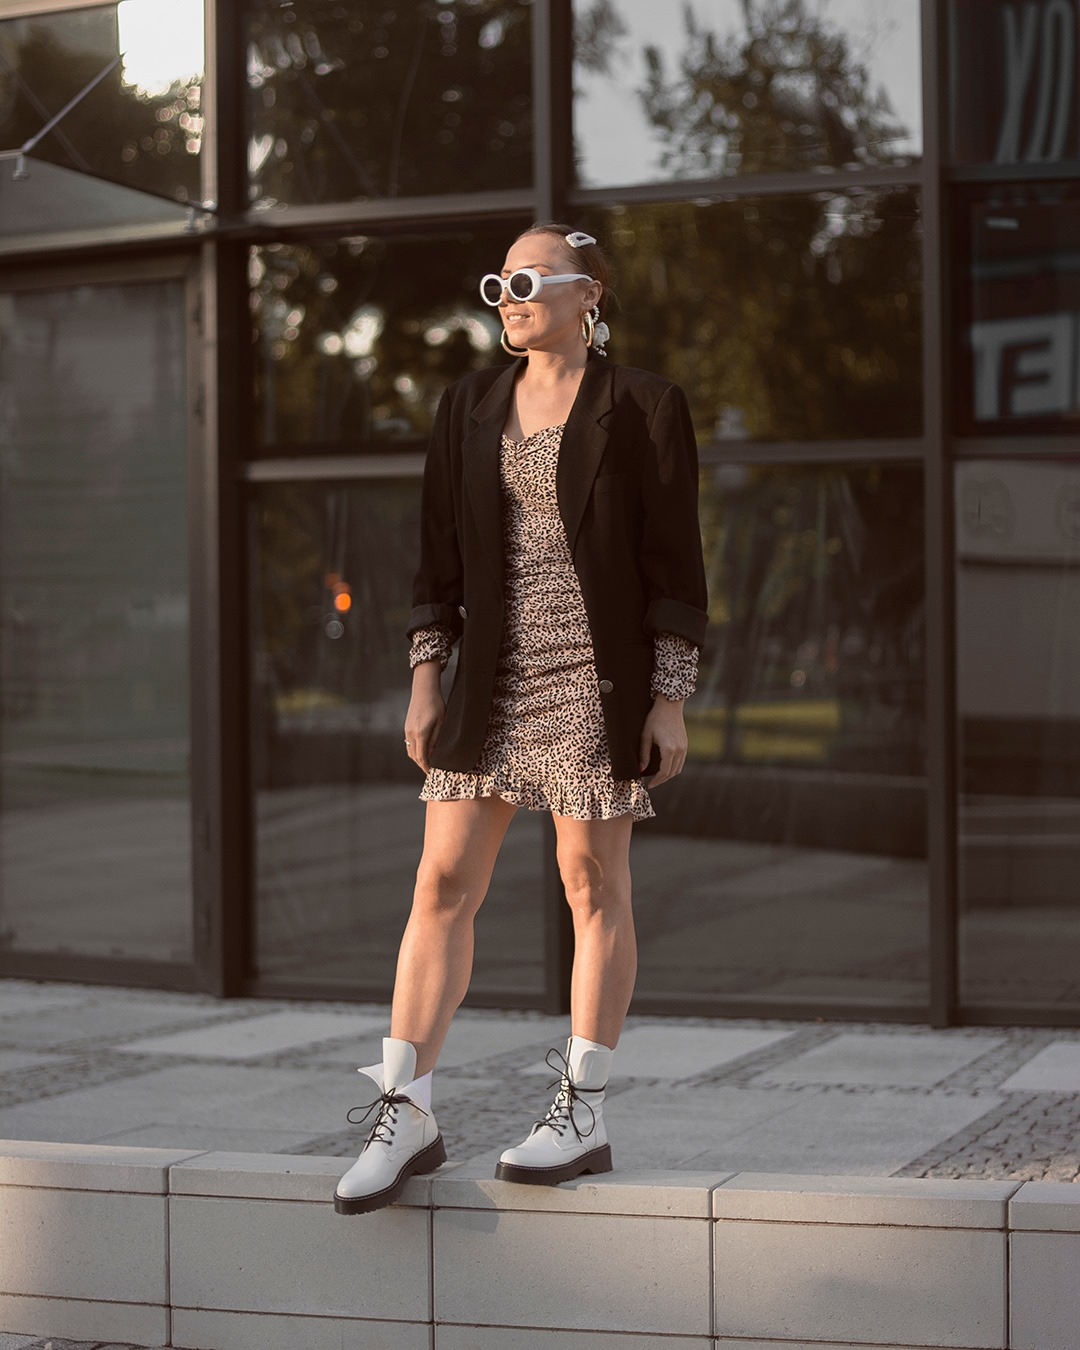 fashion blogger leo print dress femme luxe white biker boots white sunglasses pins aliexpress gold earings oversized black jacket